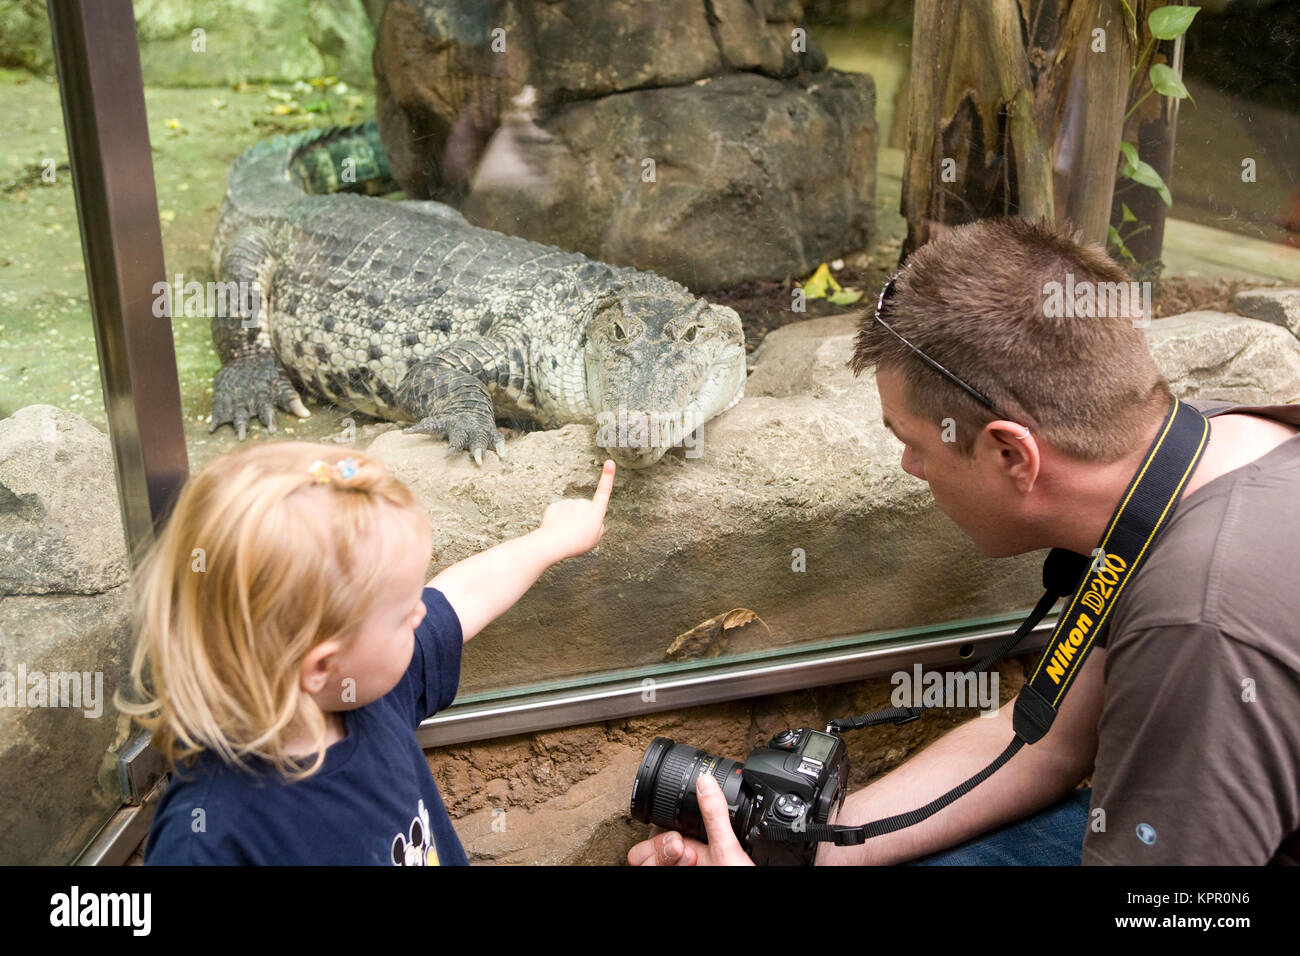 Europe, Germany, Wuppertal, the Zoo, girl and crocodile.  Europa, Deutschland, Wuppertal, Zoo Wuppertal, Maedchen - Stock Image